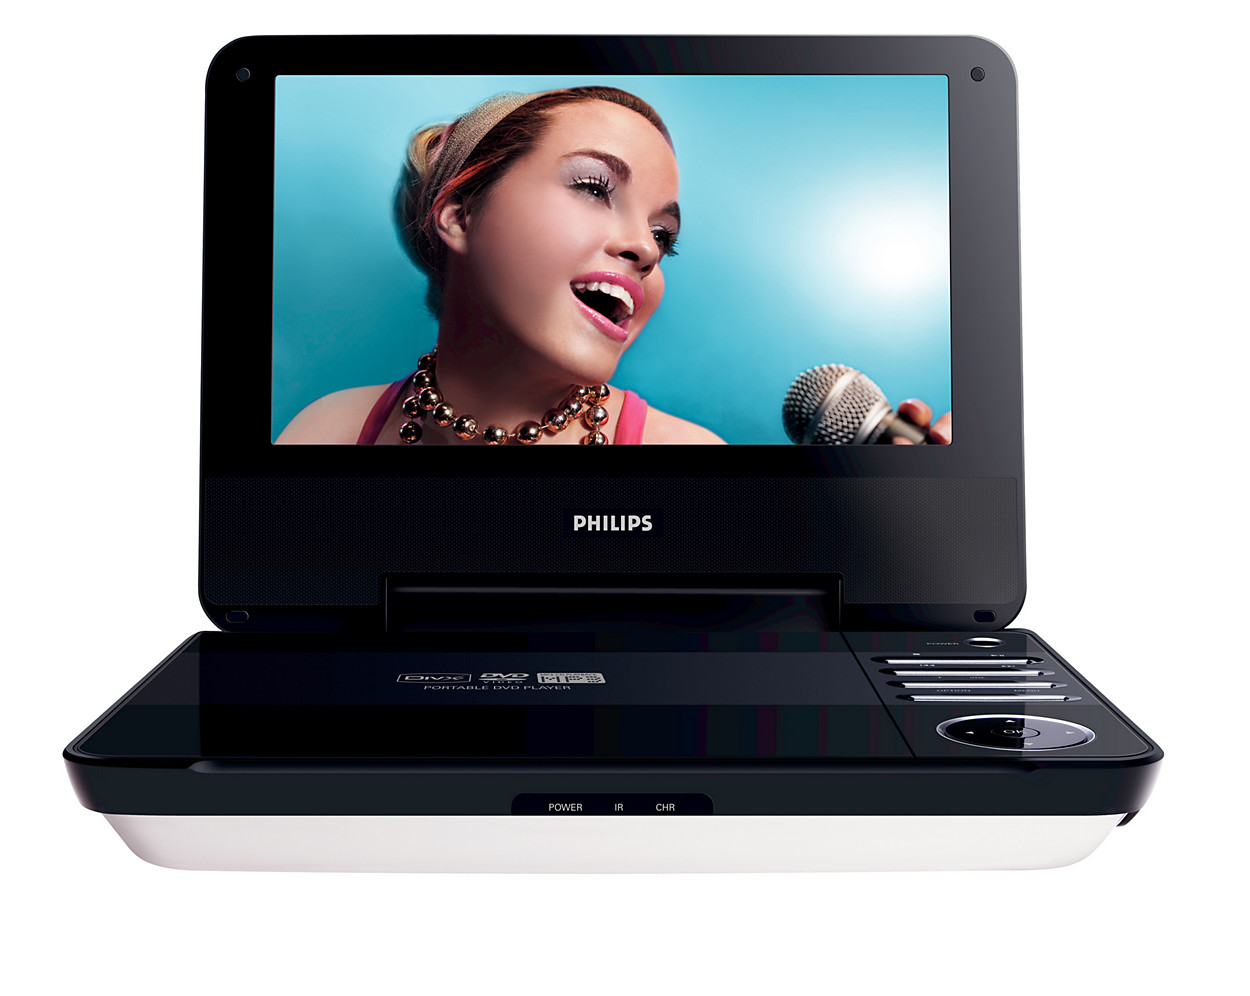 buy the philips portable dvd player pet740 05 portable dvd. Black Bedroom Furniture Sets. Home Design Ideas